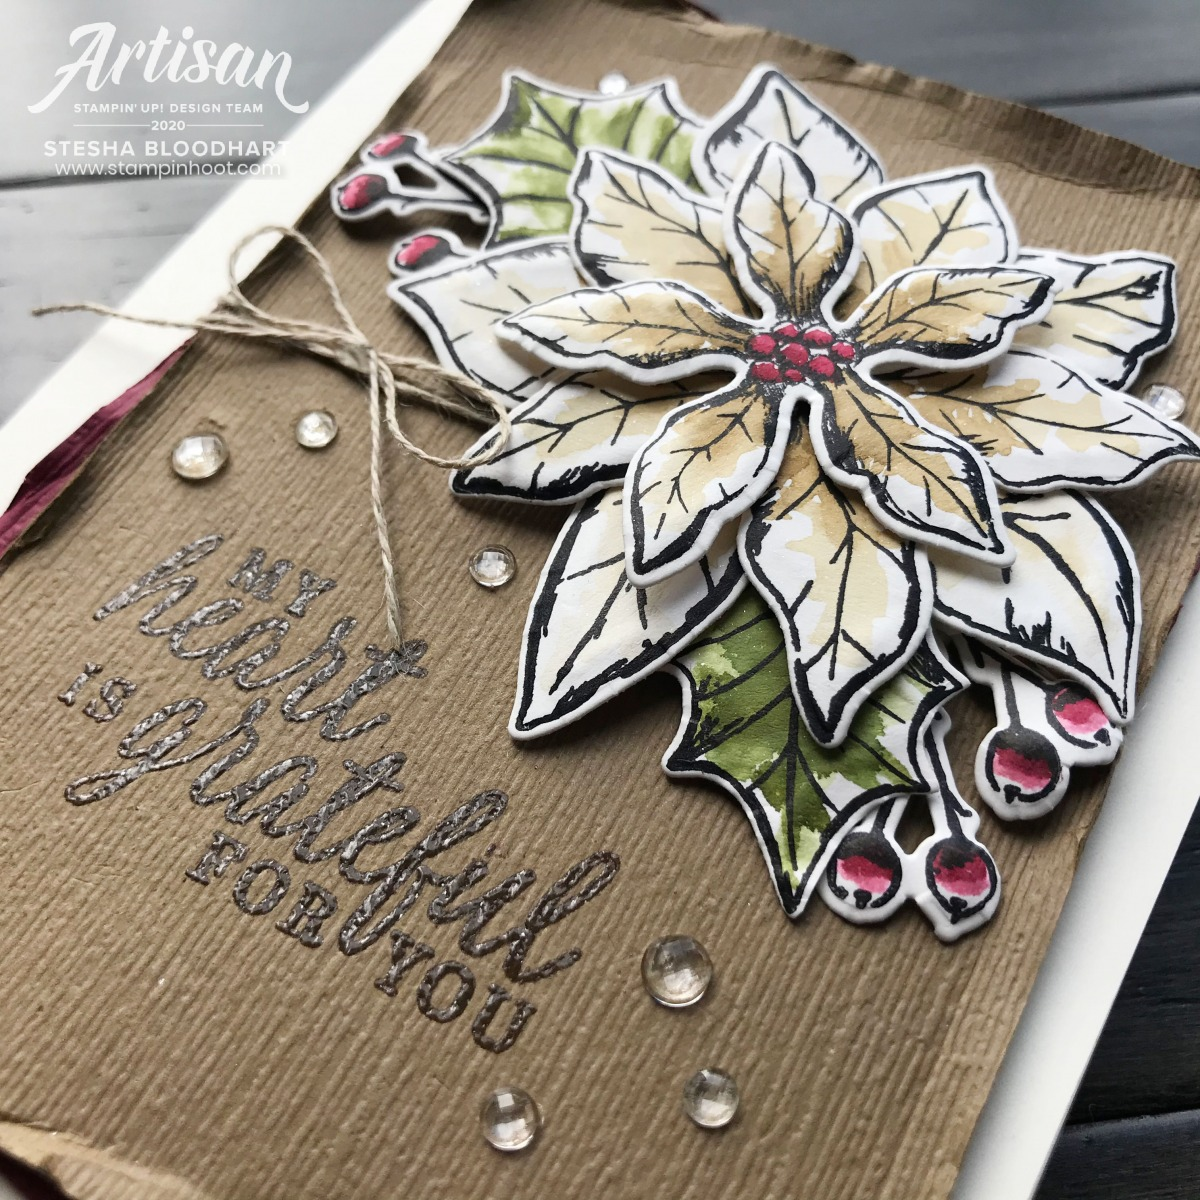 Poinsettia Petals and Beautiful Autumn Stamp Sets by Stampin' Up! Card by Stesha Bloodhart, Stampin' Hoot!